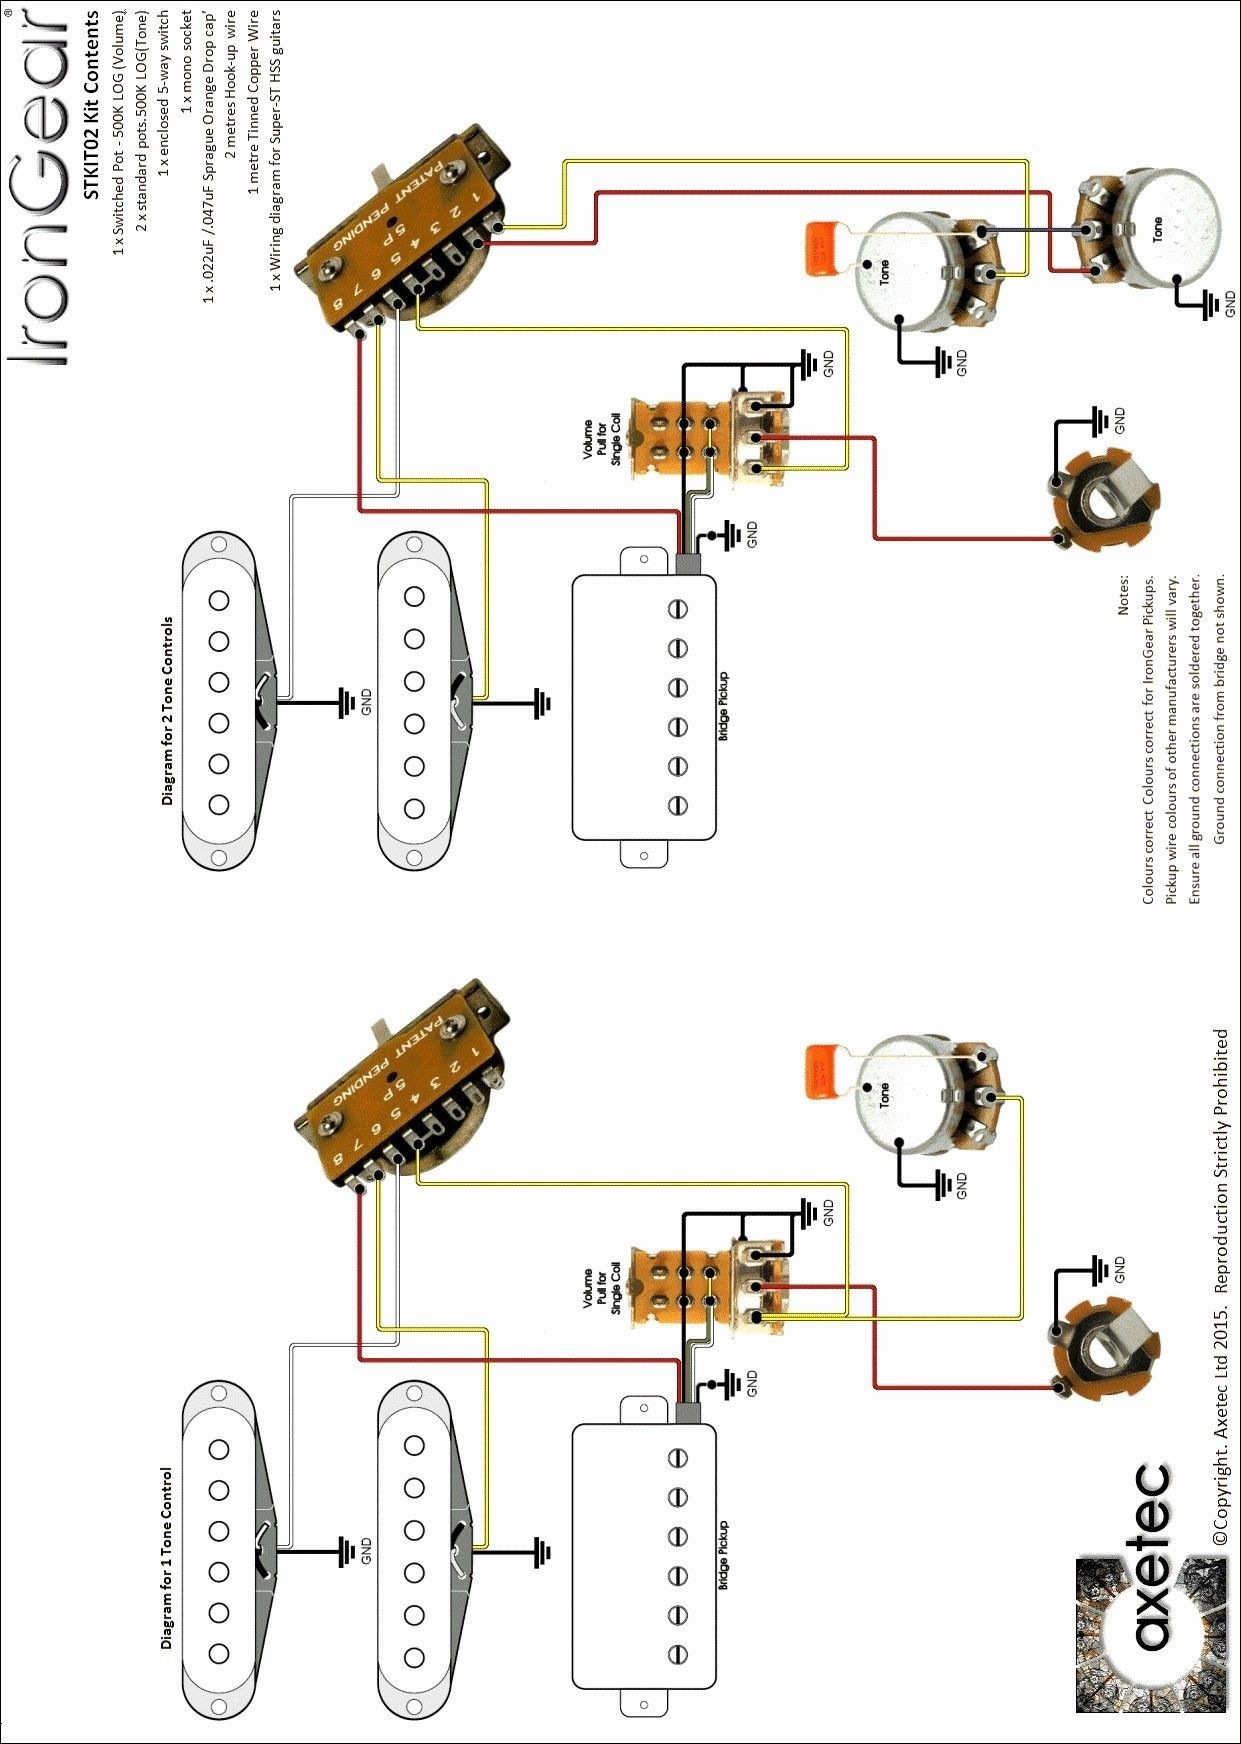 small resolution of 2 humbuckers 1 volume 1 tone 3 way switch inspirational fine guitar with regard to guitar wiring diagram 2 humbucker 1 volume 1 tone